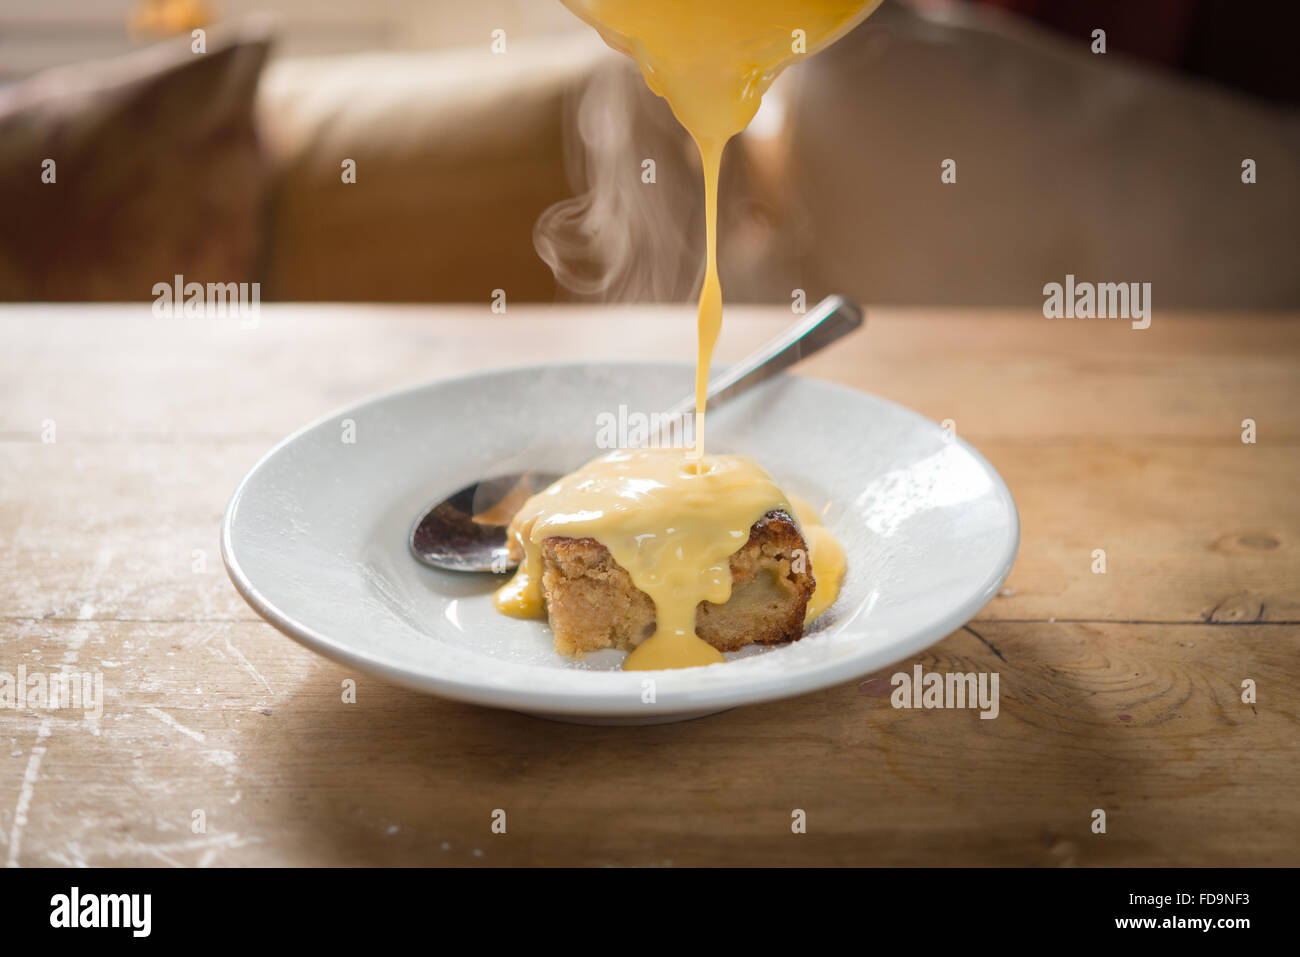 A steamed sponge pudding and custard desert on a wooden table - Stock Image